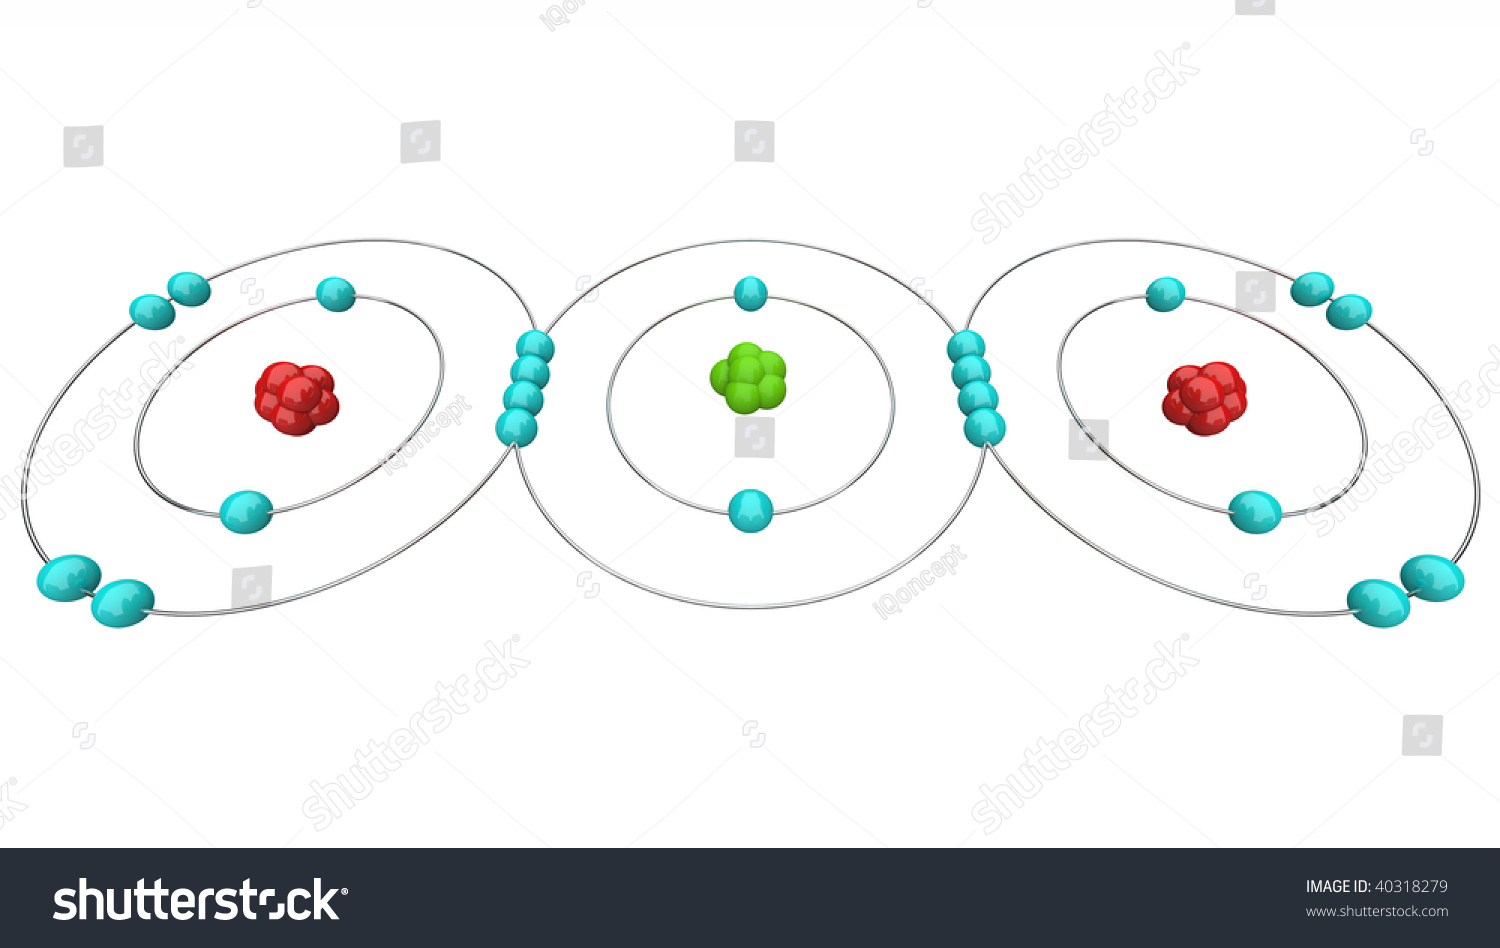 Atomic Diagram Carbon Dioxide Co 2 Showing Stock Illustration. An Atomic Diagram Of Carbon Dioxide Or Co2 Showing Its Protons Neutrons And. Proton. Oxygen Molecule Electrons Protons Diagram At Scoala.co